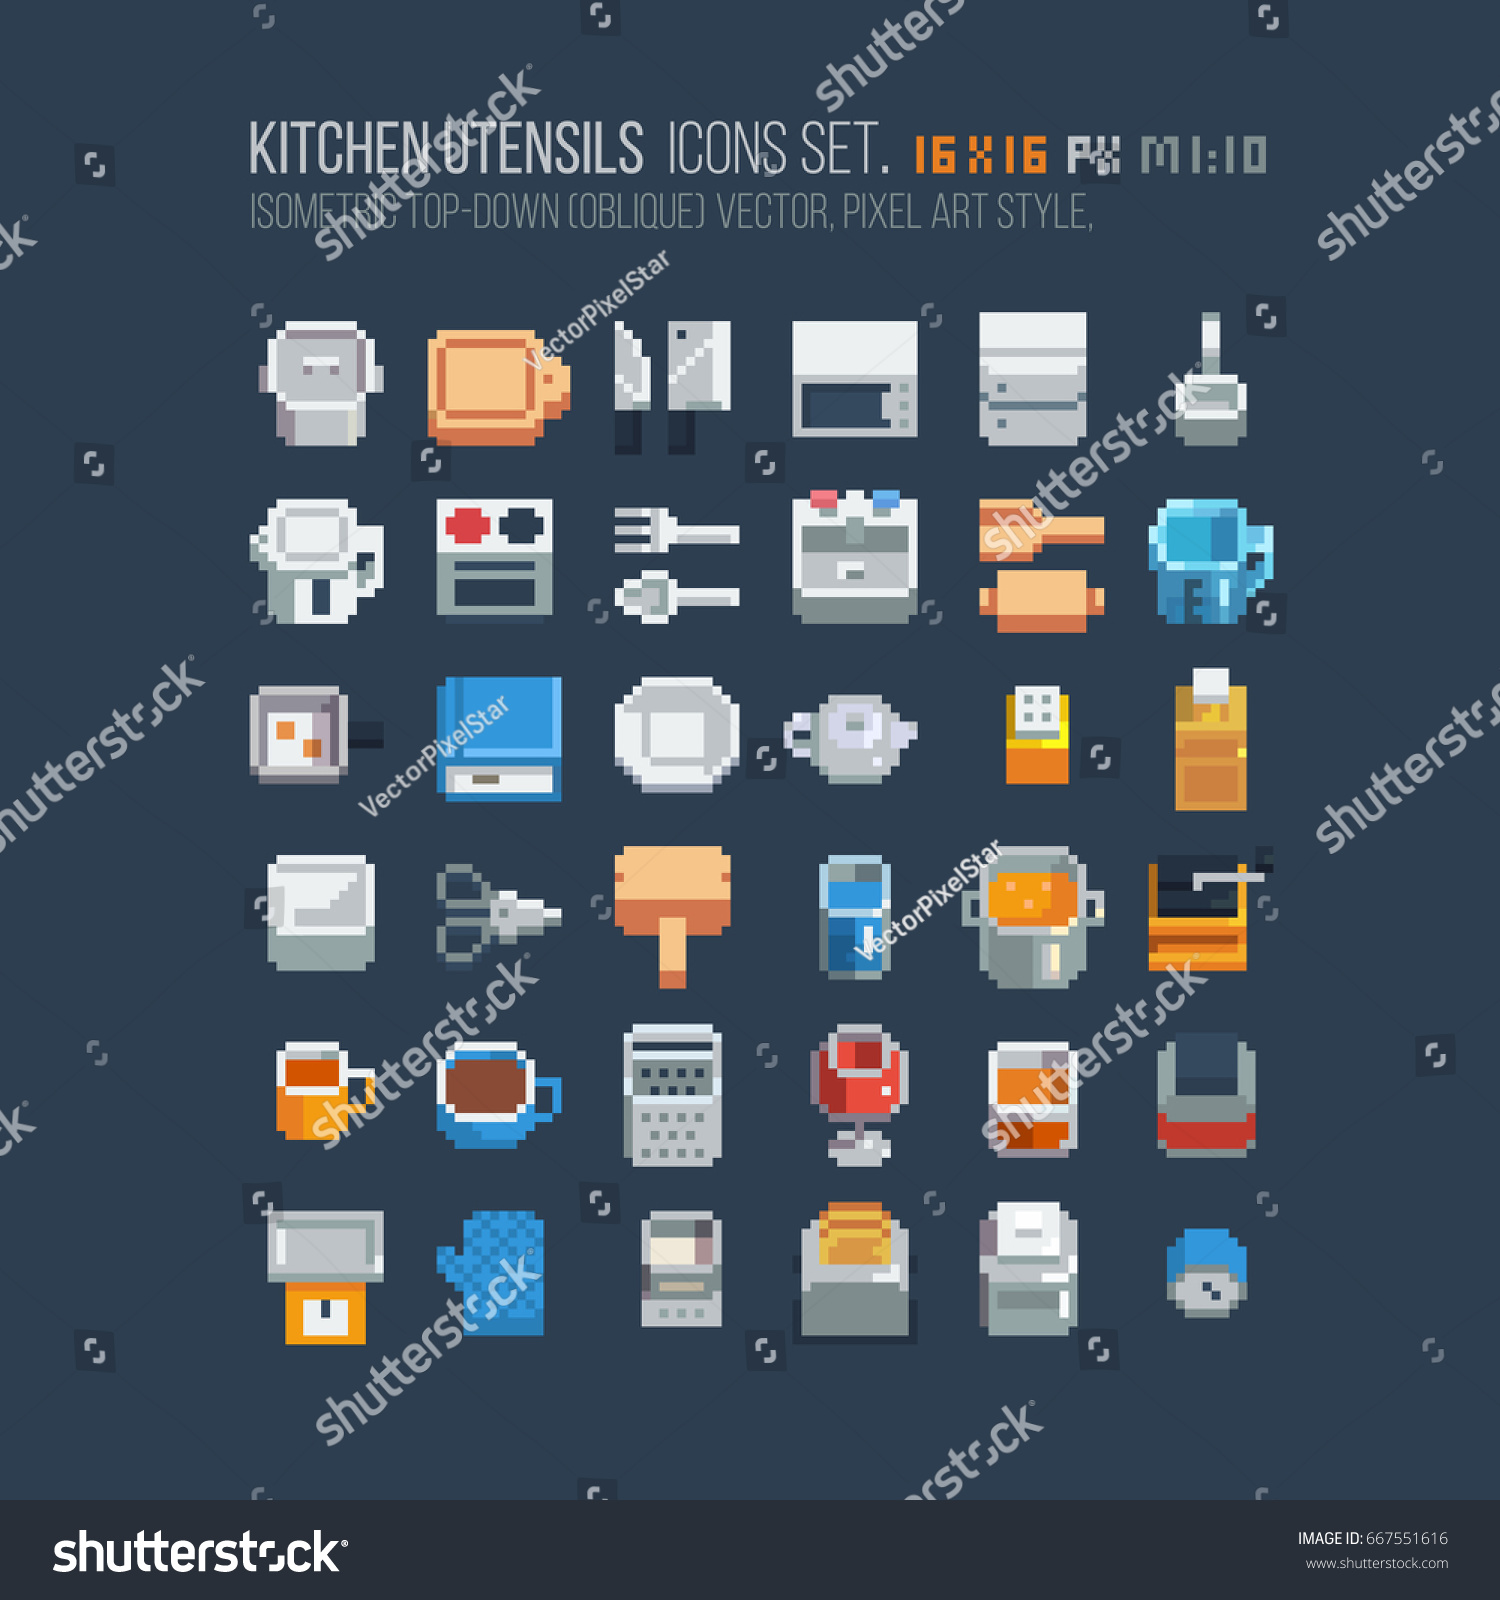 Isometric kitchen utensils icons 16x16 pixels stock vector for 16x16 kitchen designs